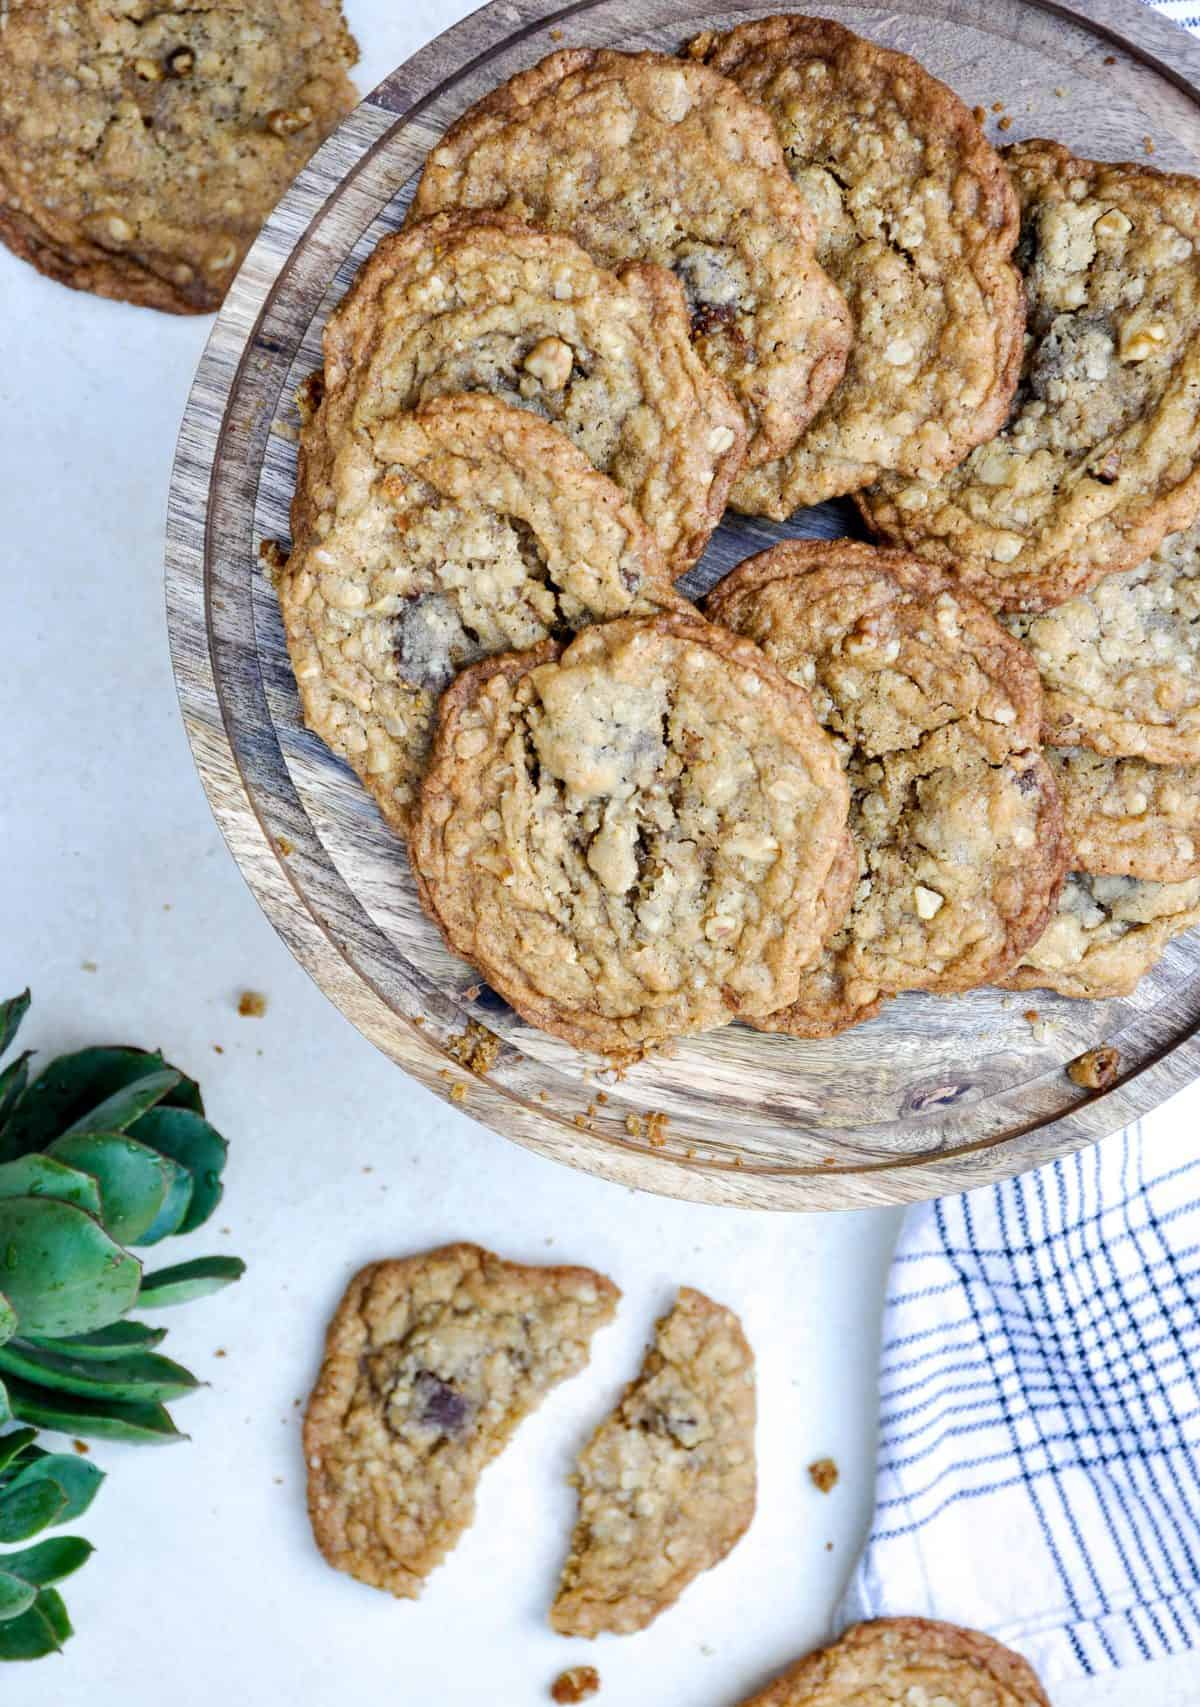 Spiced Fig Cookie with Nuts